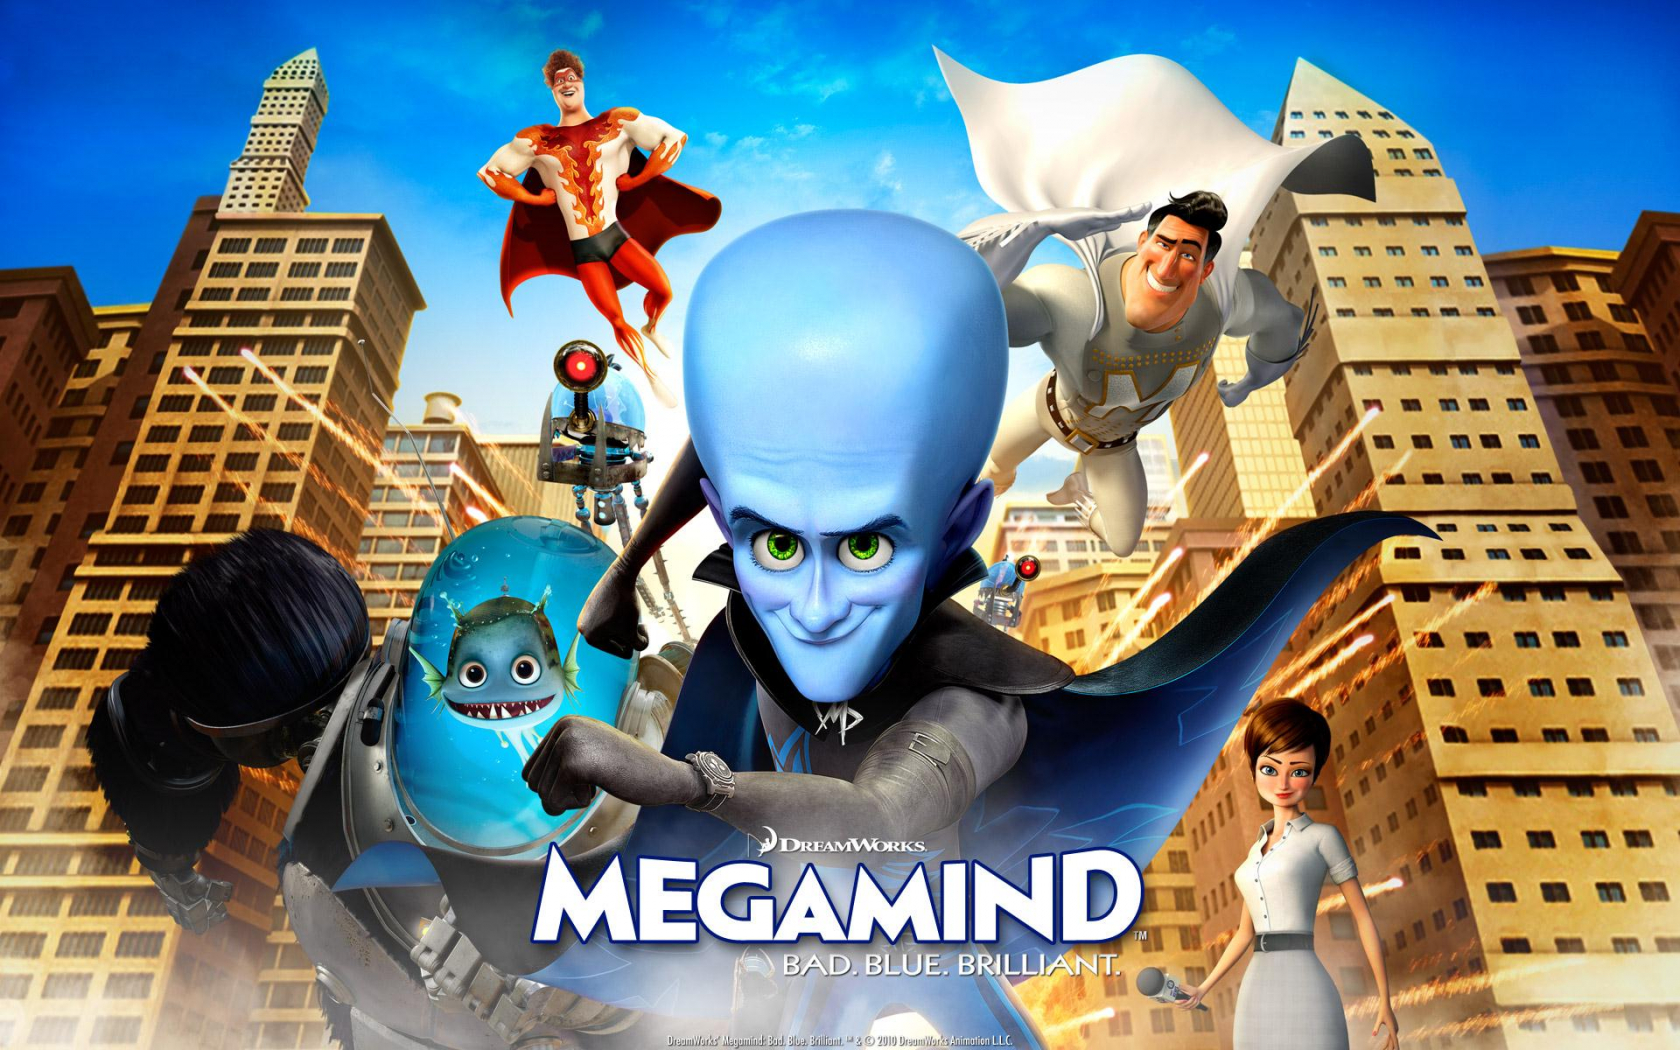 Free Full Cartoon Movies free download picture movie megamind 3d cartoon movies